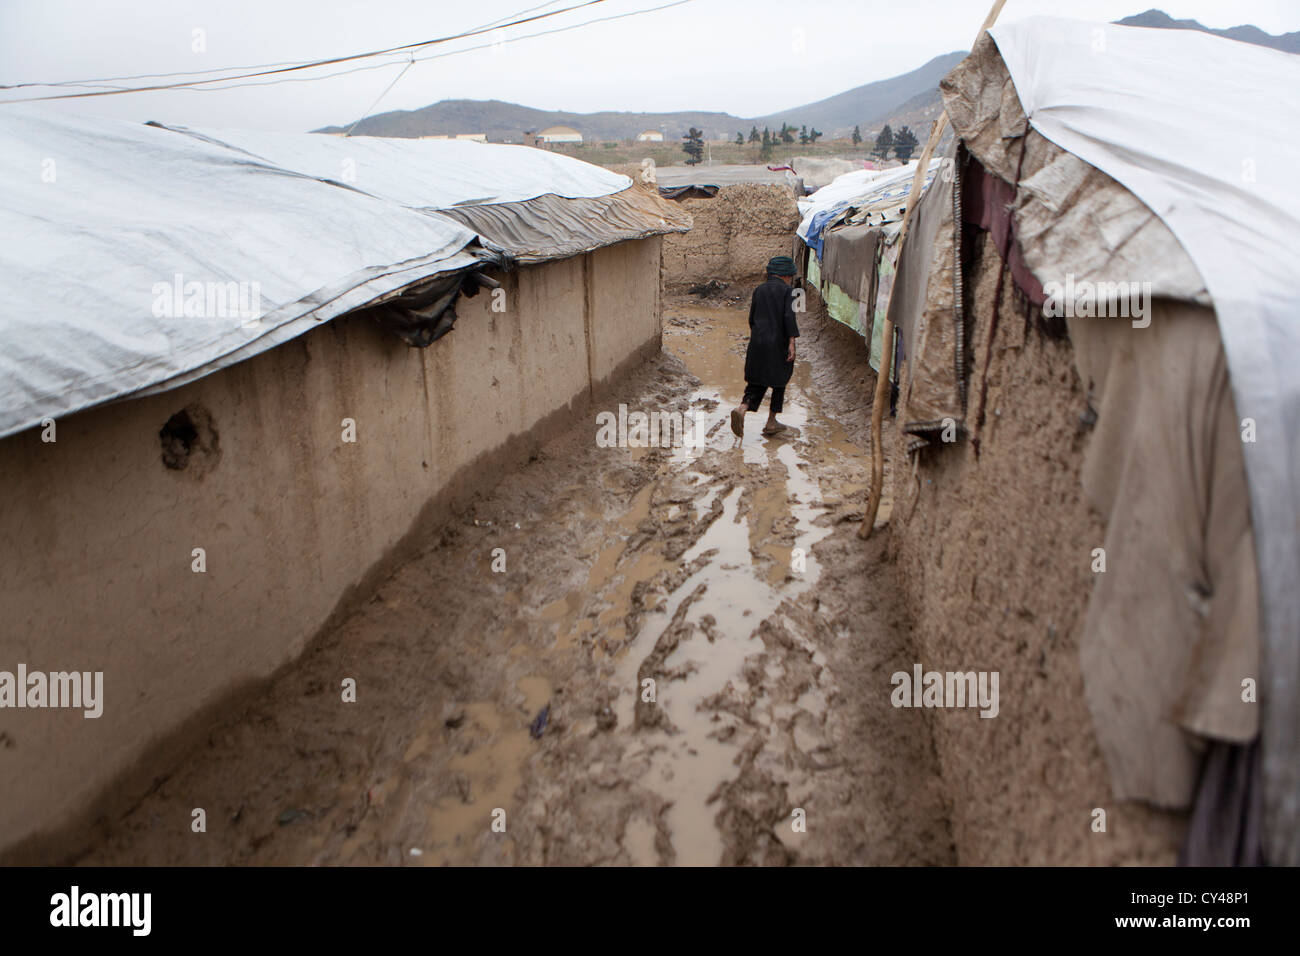 Afghan boy walking in a slum of kabul - Stock Image